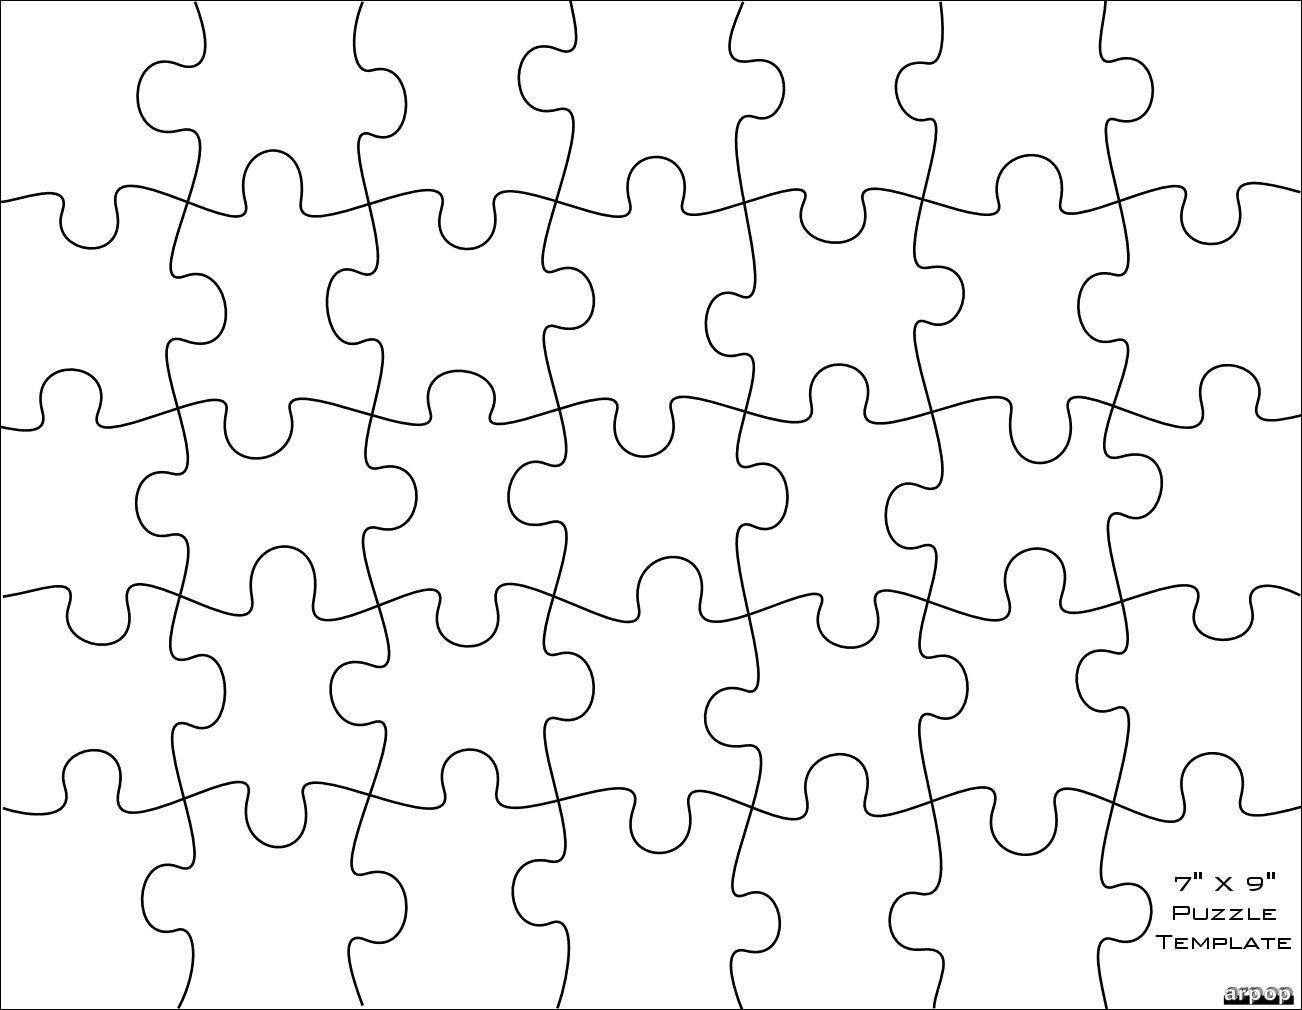 001 Imposing Jig Saw Puzzle Template High Definition  Printable Blank Jigsaw Vector Free PngFull